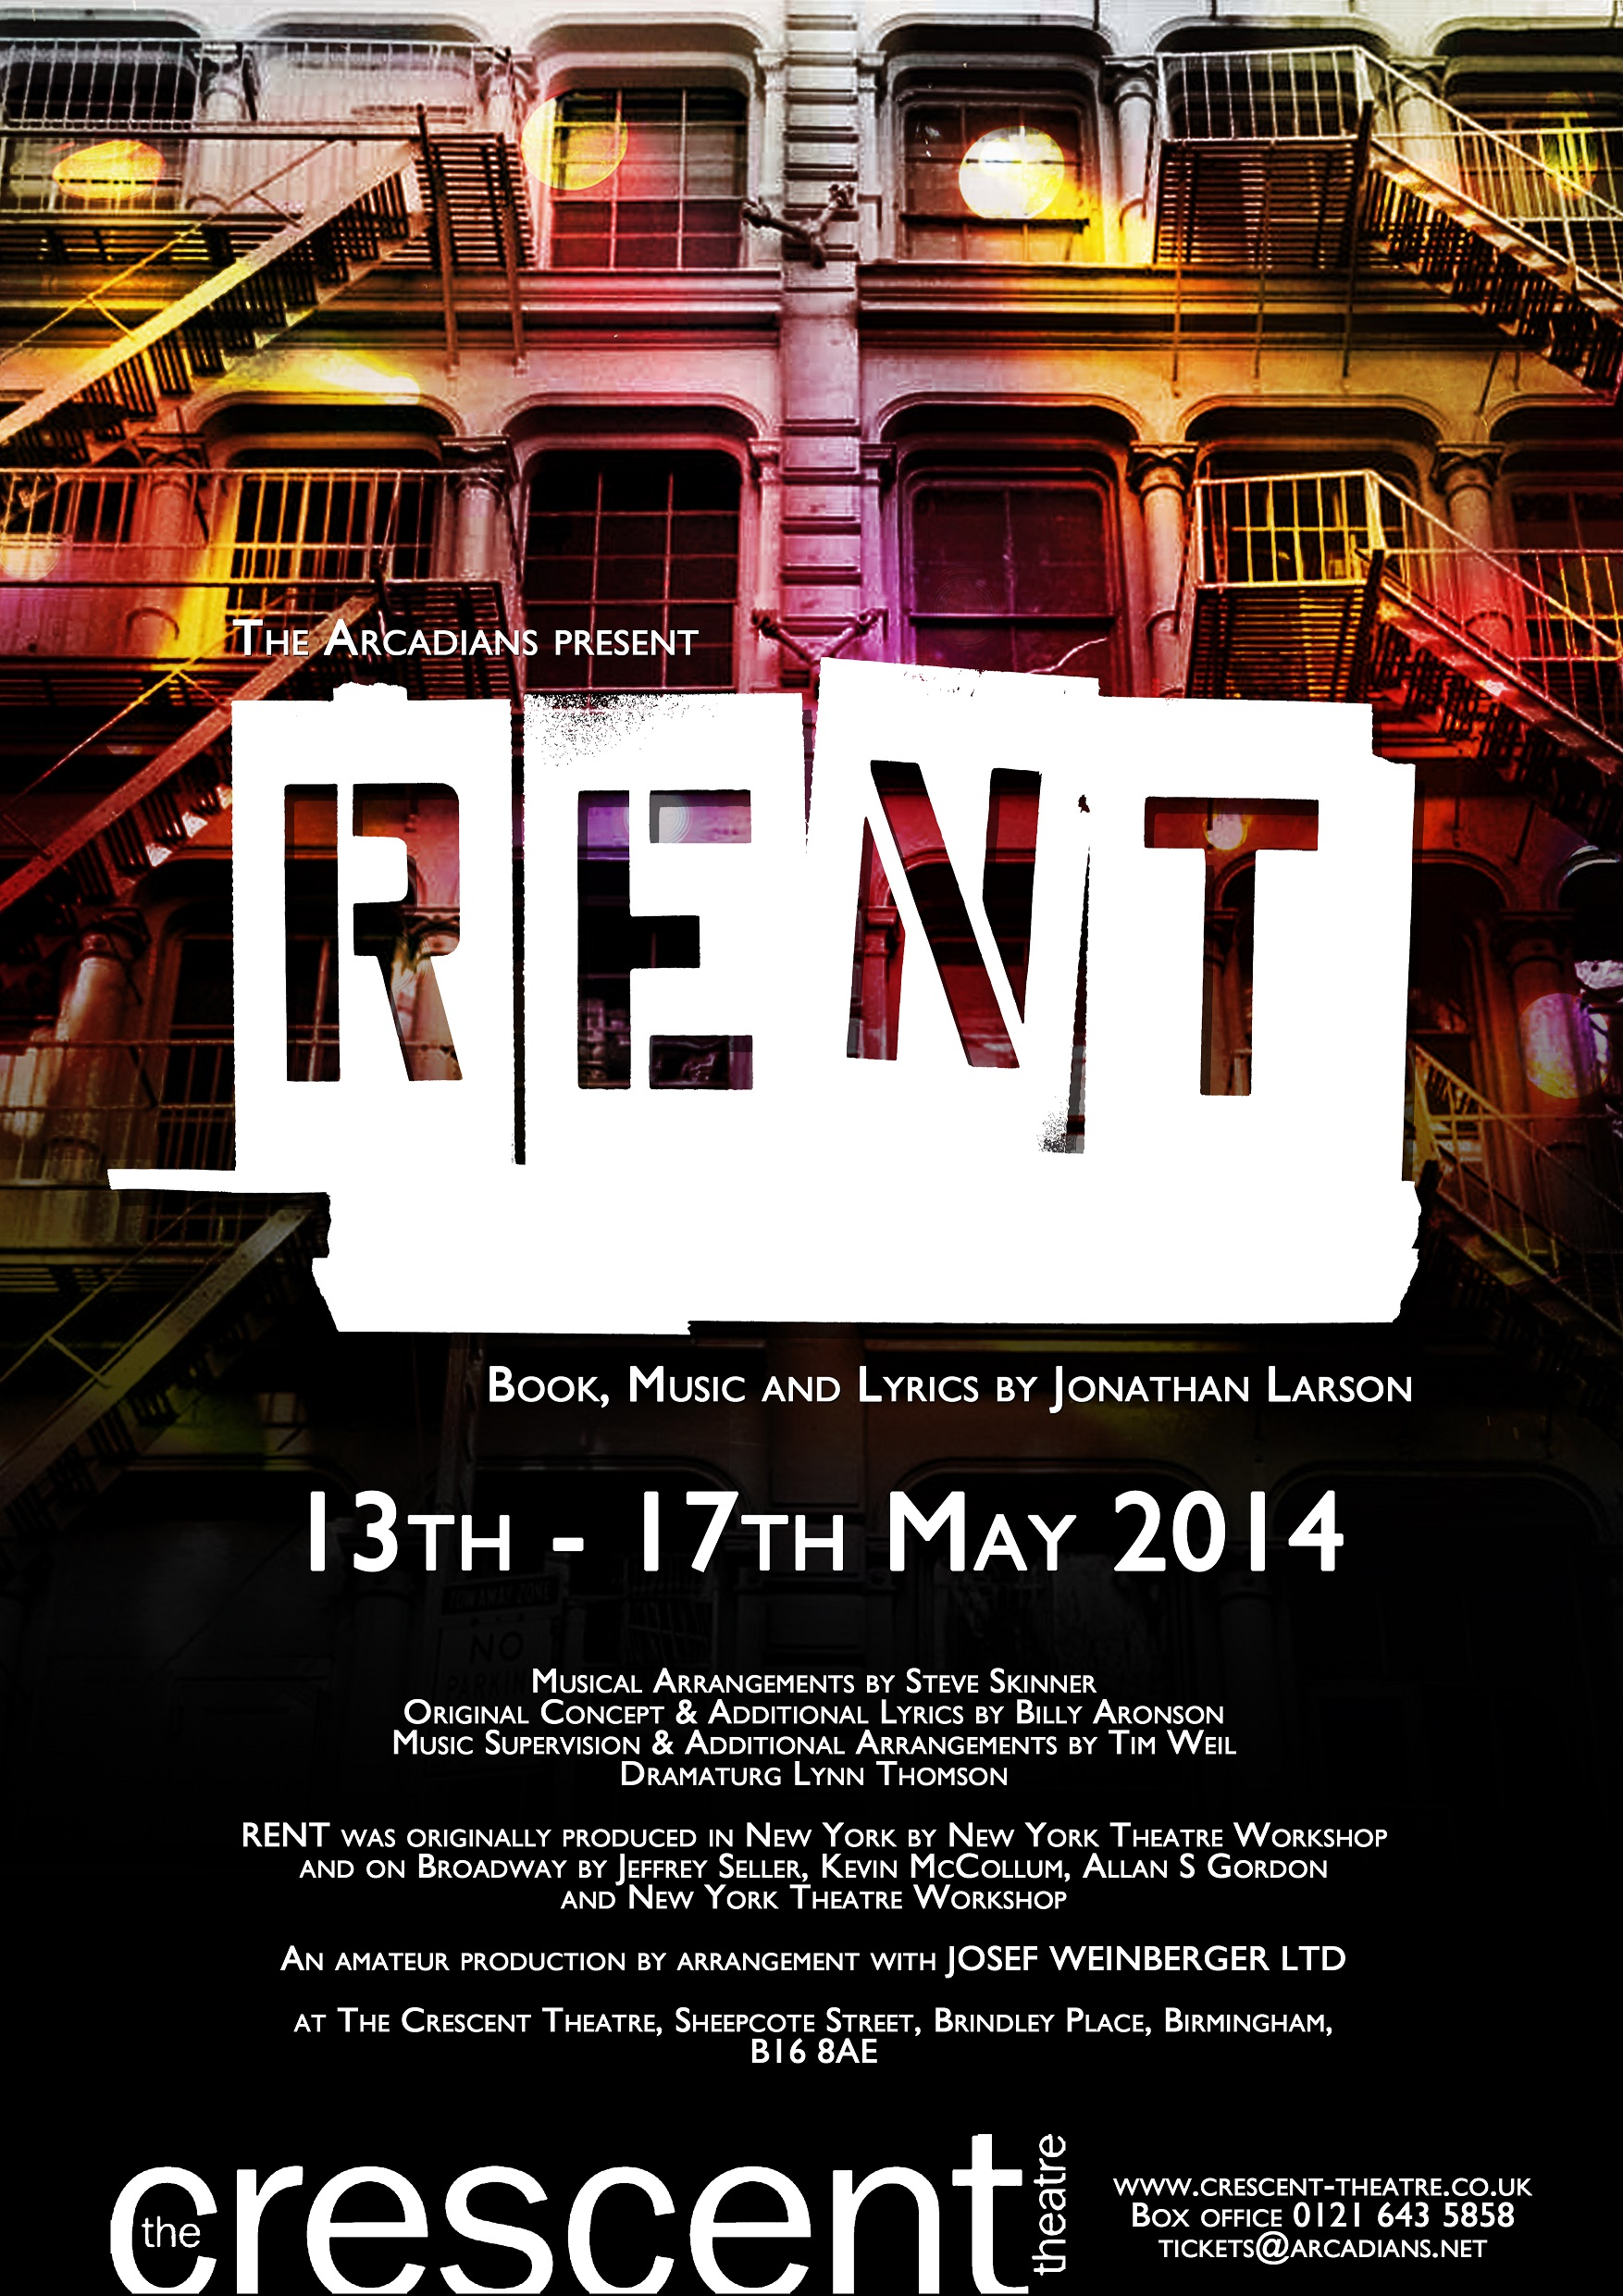 Rent Poster with Dates shrunk again